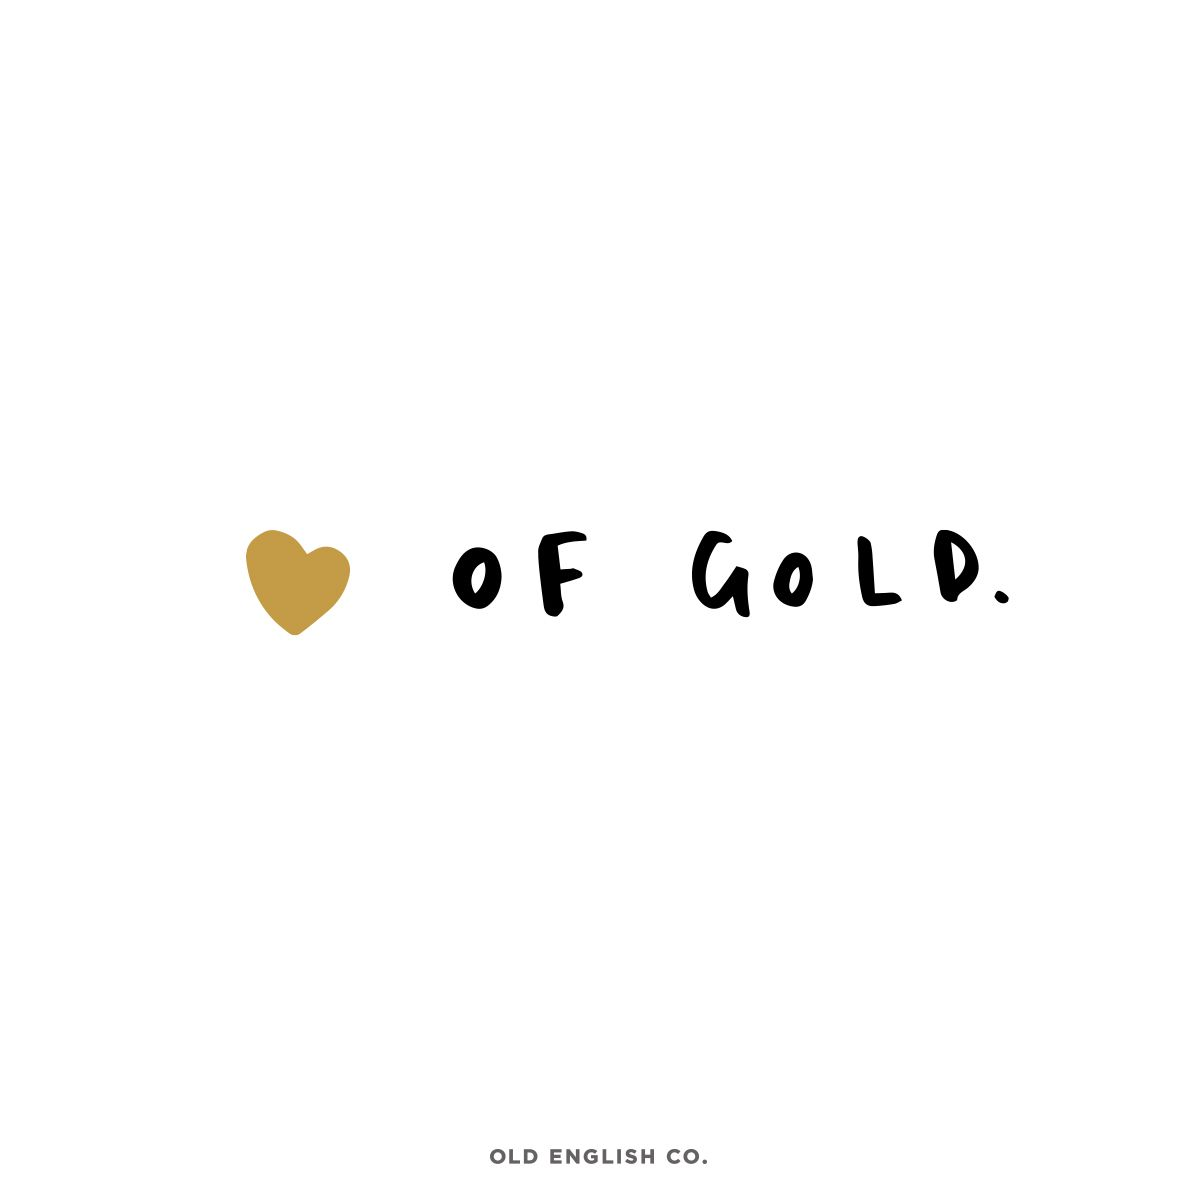 Old English Company Unique Gifts Personalised Typography Prints Greeting Cards Homewares Gold Quotes Inspirational Quotes Quotes